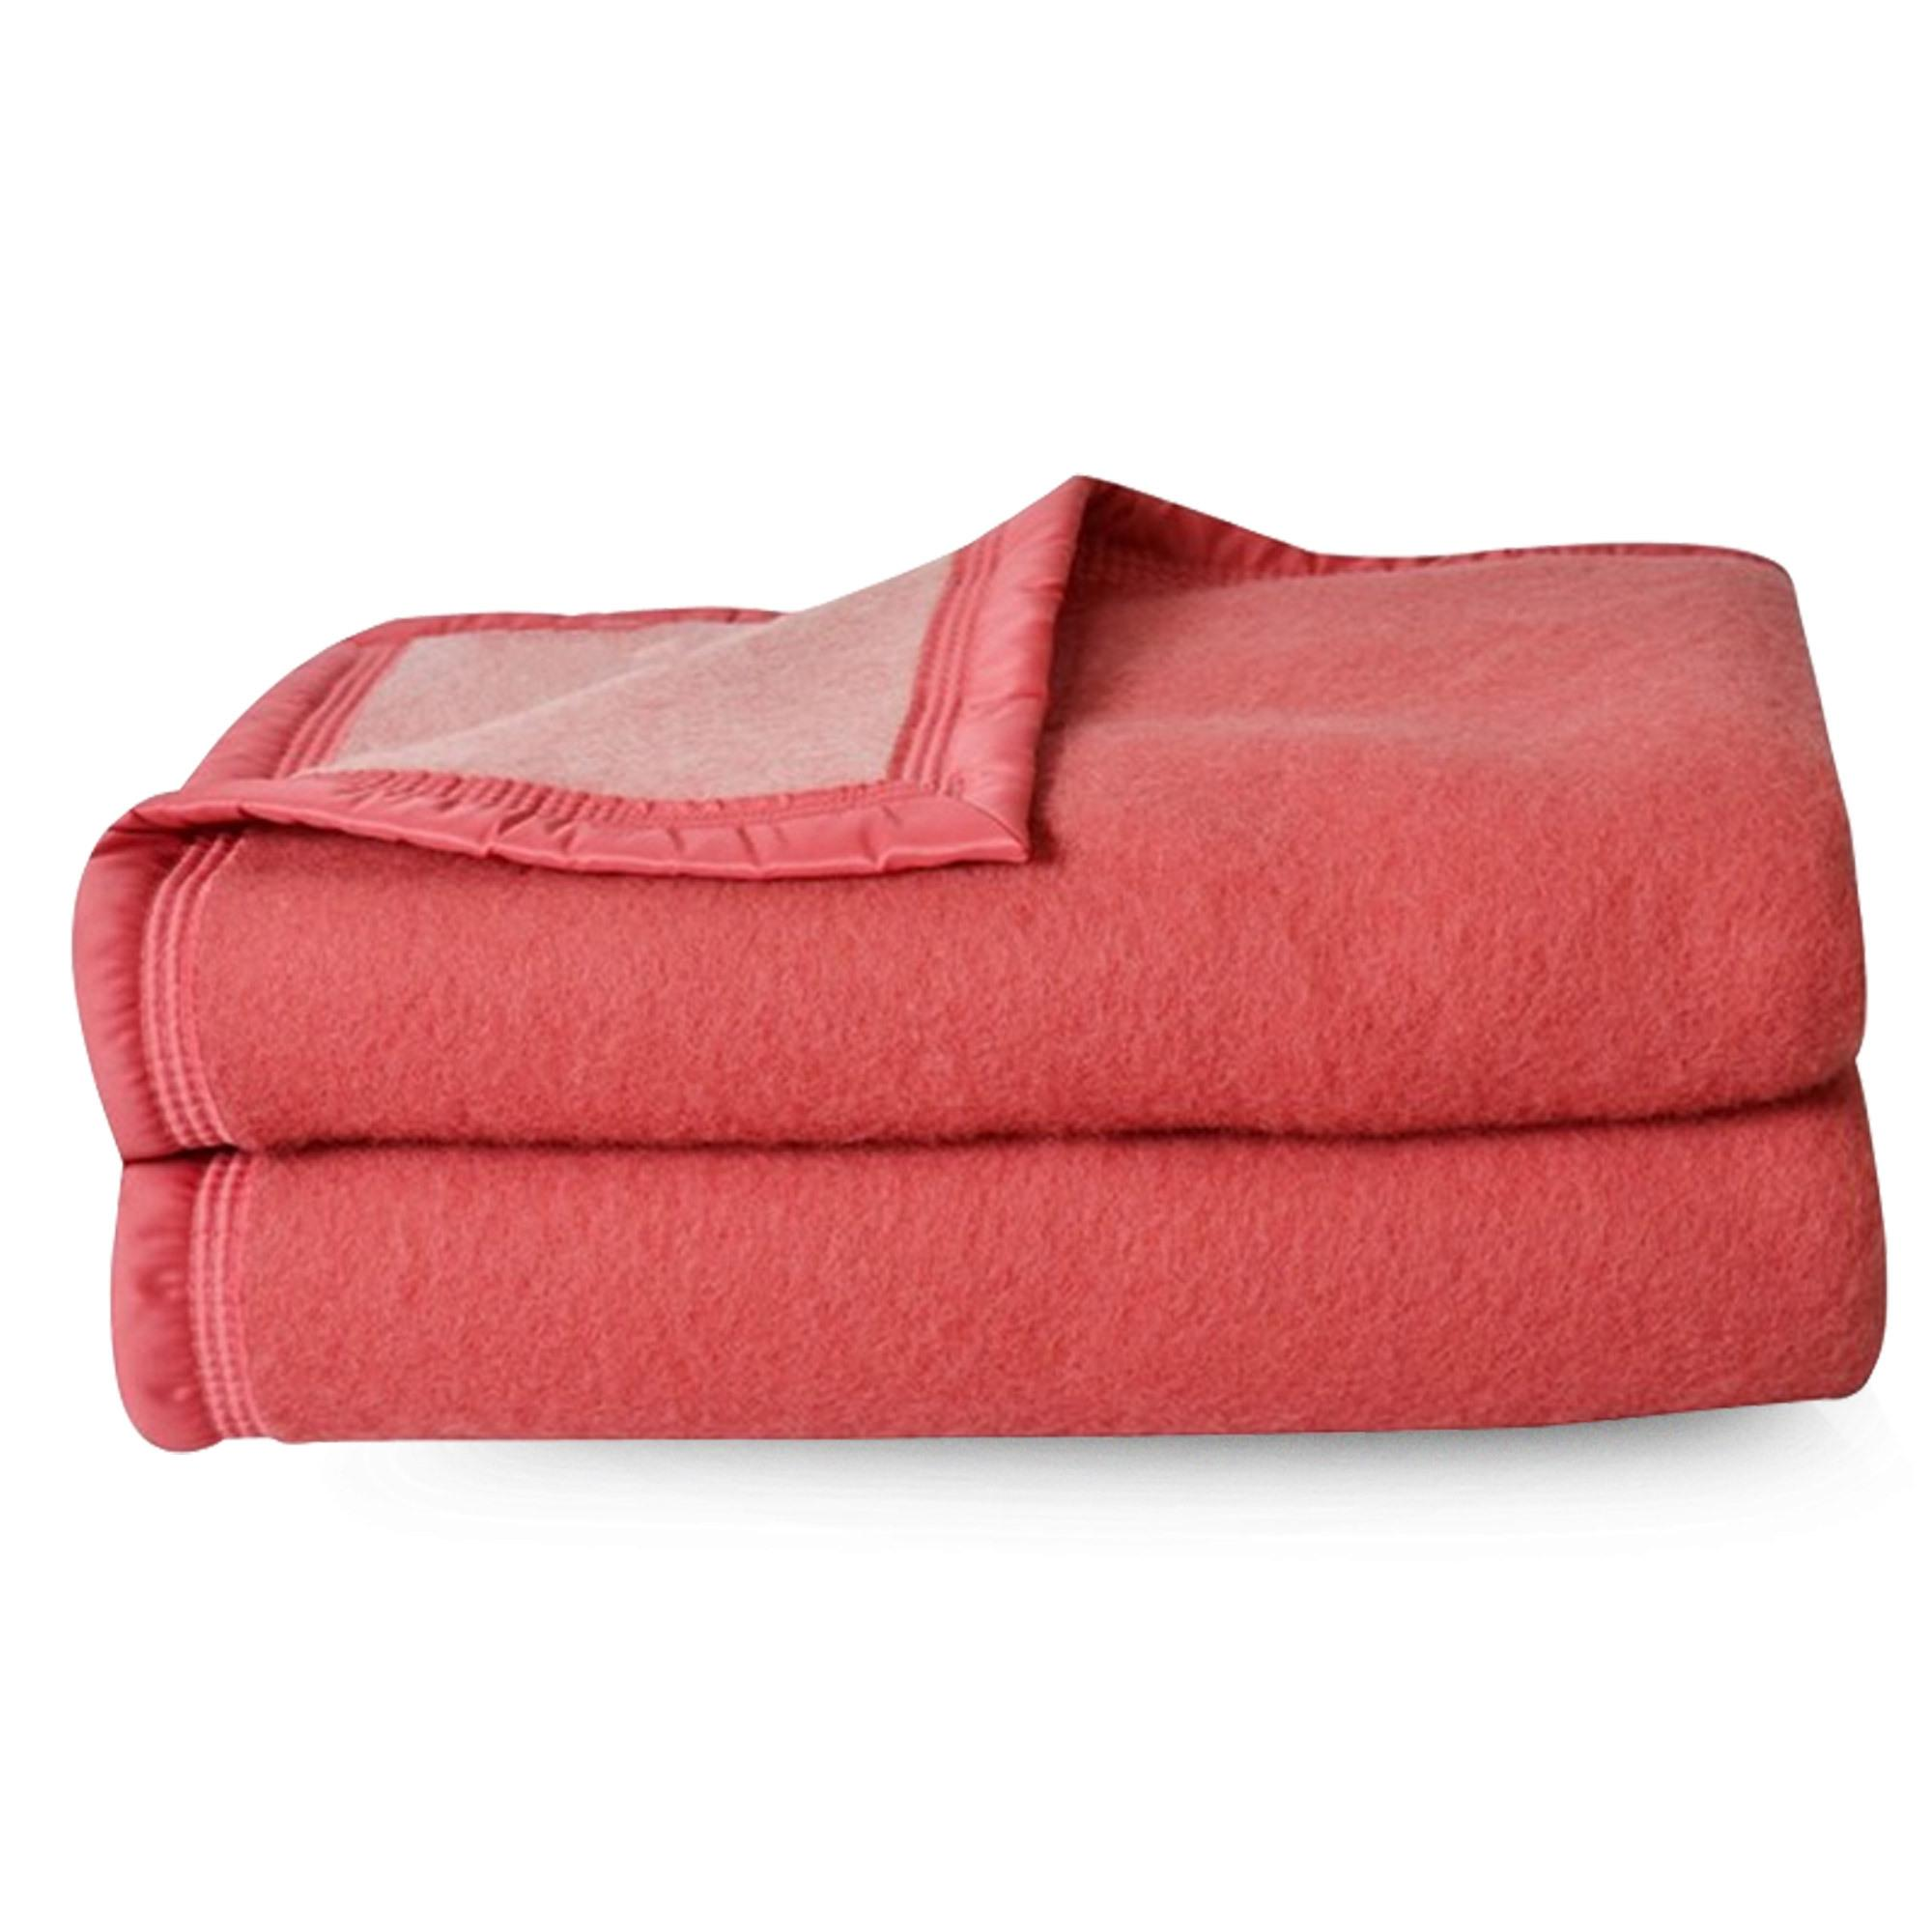 couverture pure laine vierge woolmark 500g m volta 240x260 rouge bois de rose ebay. Black Bedroom Furniture Sets. Home Design Ideas